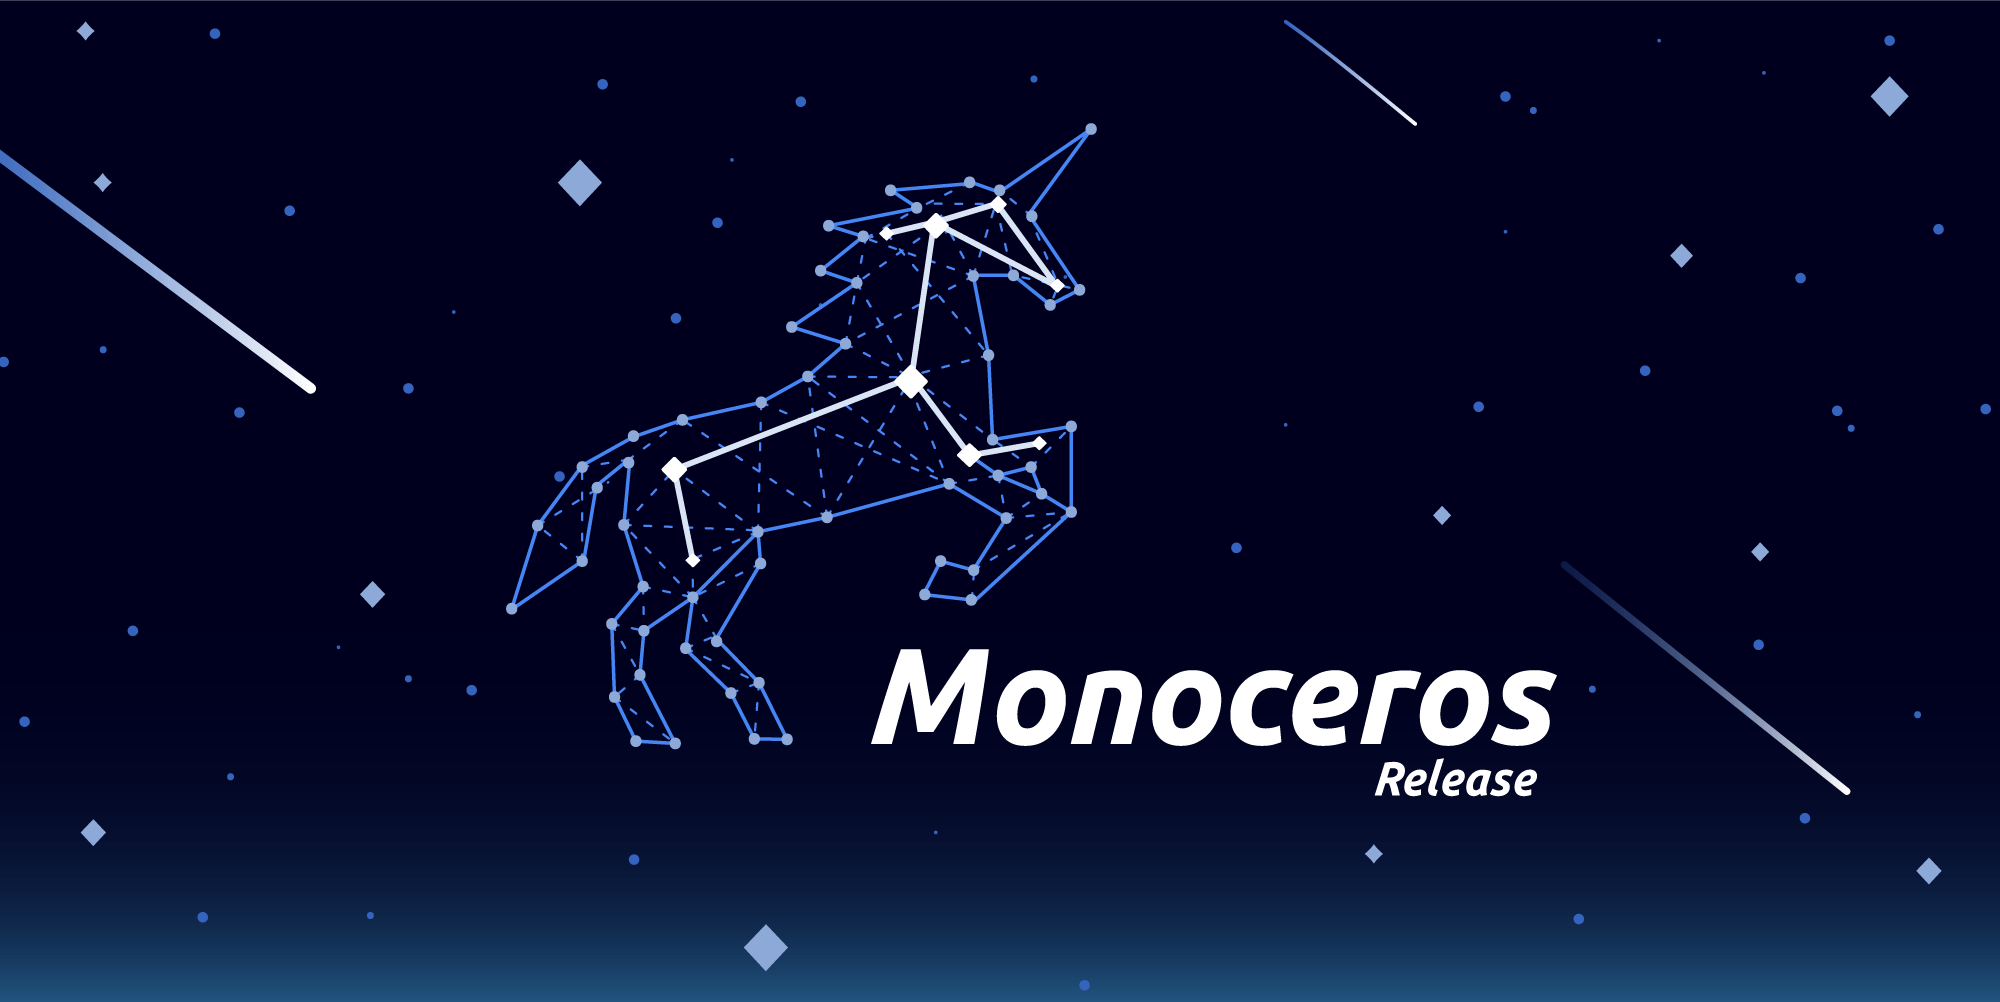 Save time, increase efficiency, and go deeper with Monoceros